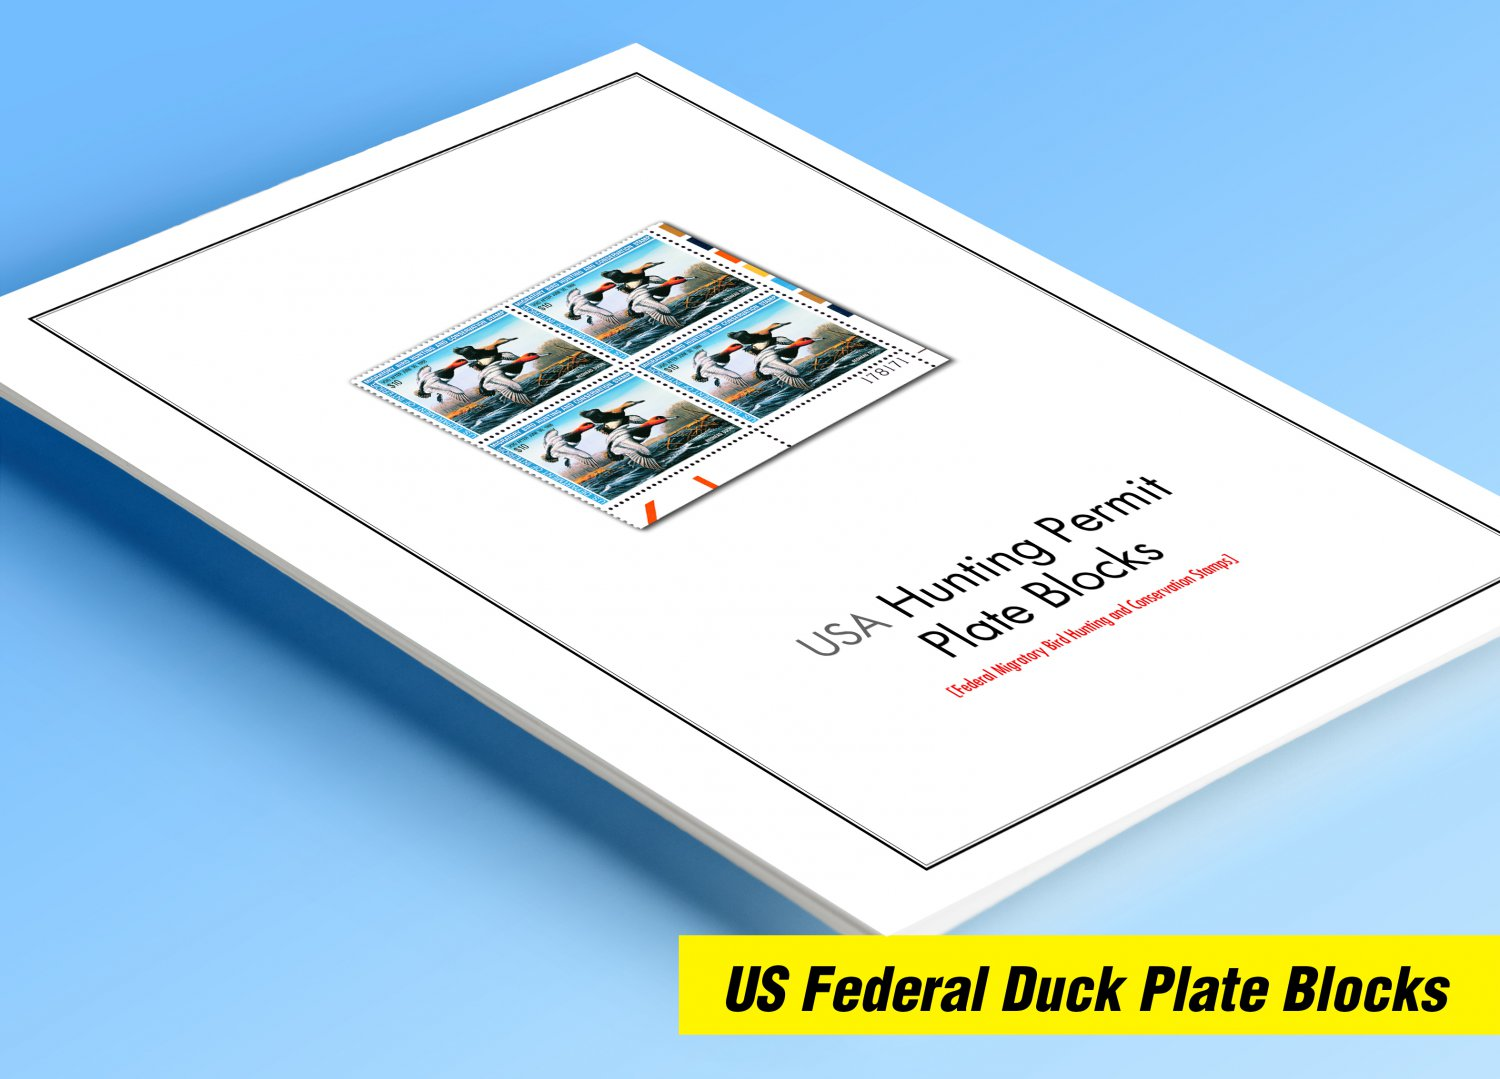 COLOR PRINTED USA FEDERAL DUCK PLATE BLOCKS 1934-2019 STAMP ALBUM PAGES (90 illustrated pages)